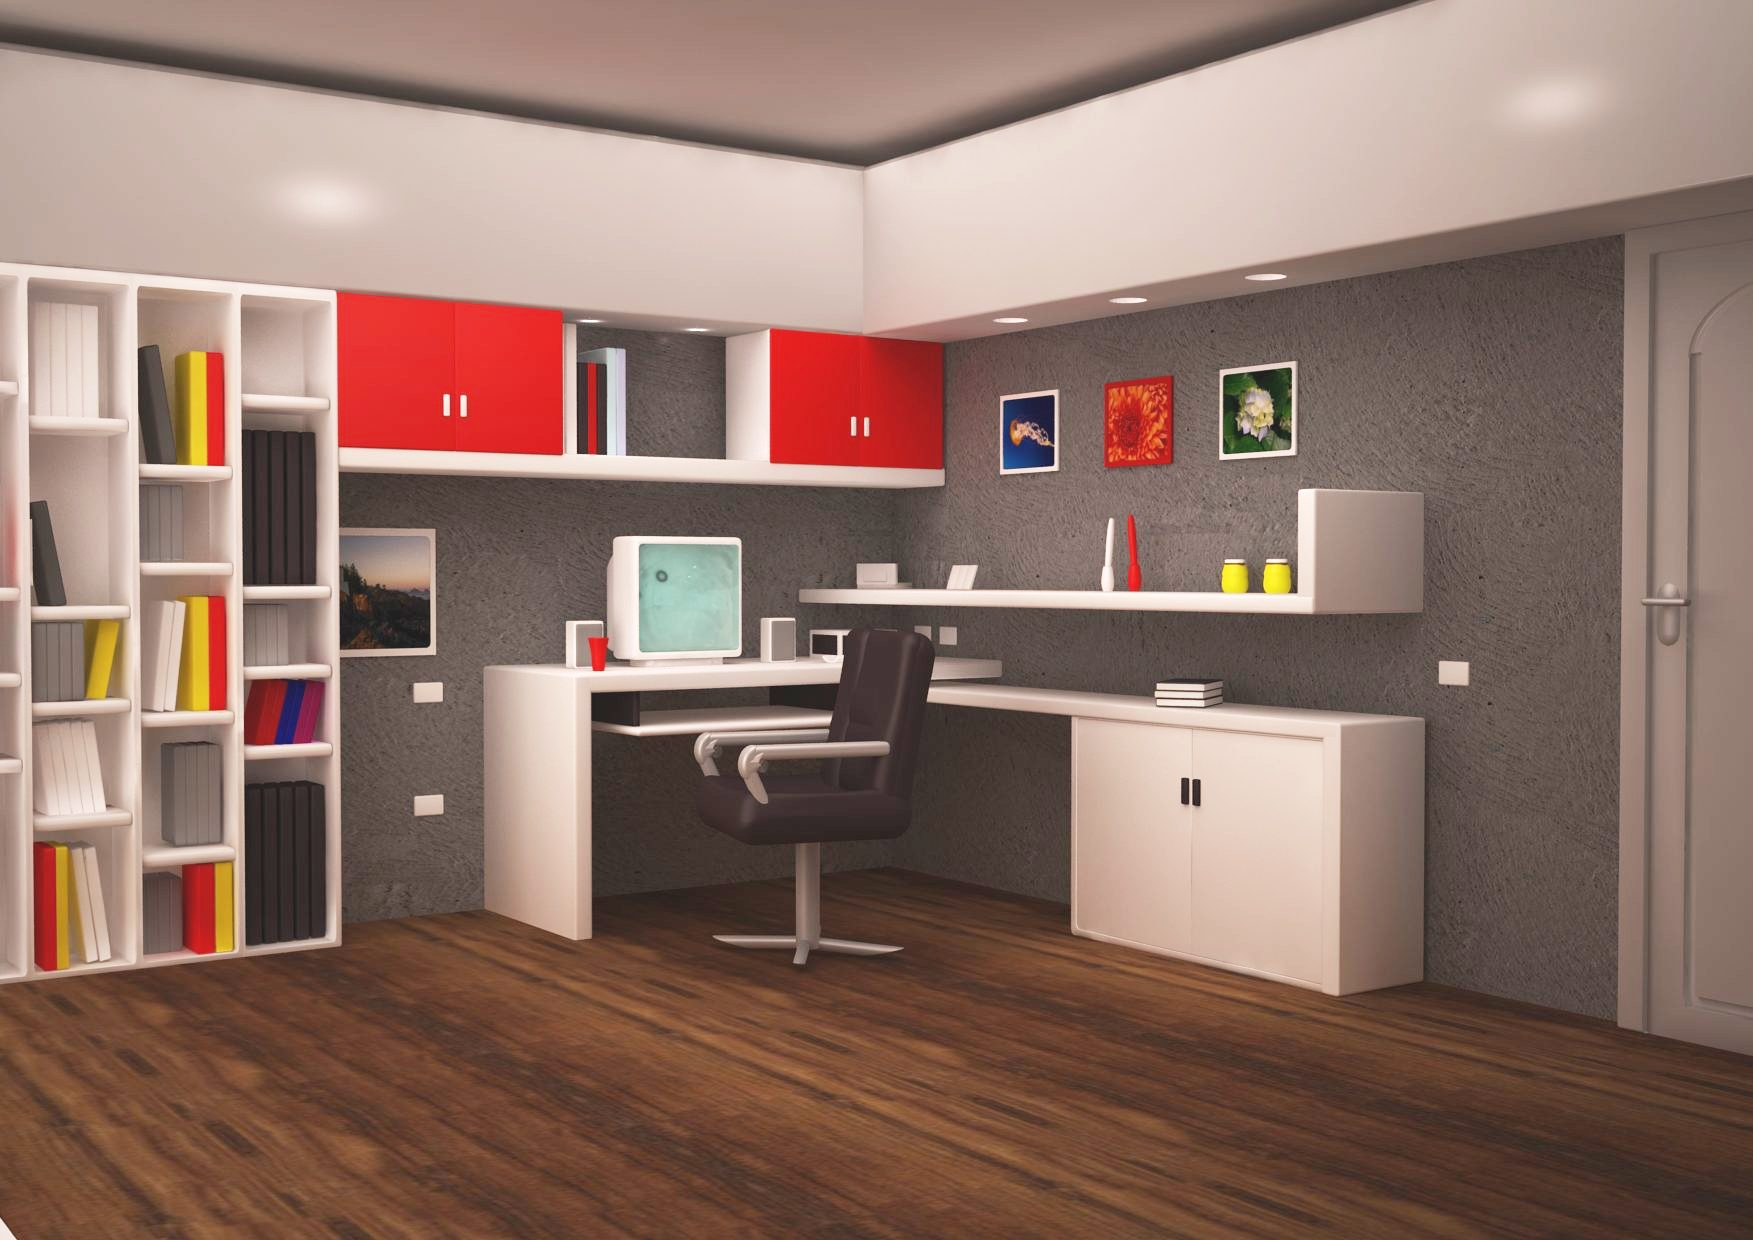 Office room with inbuilt cabinets